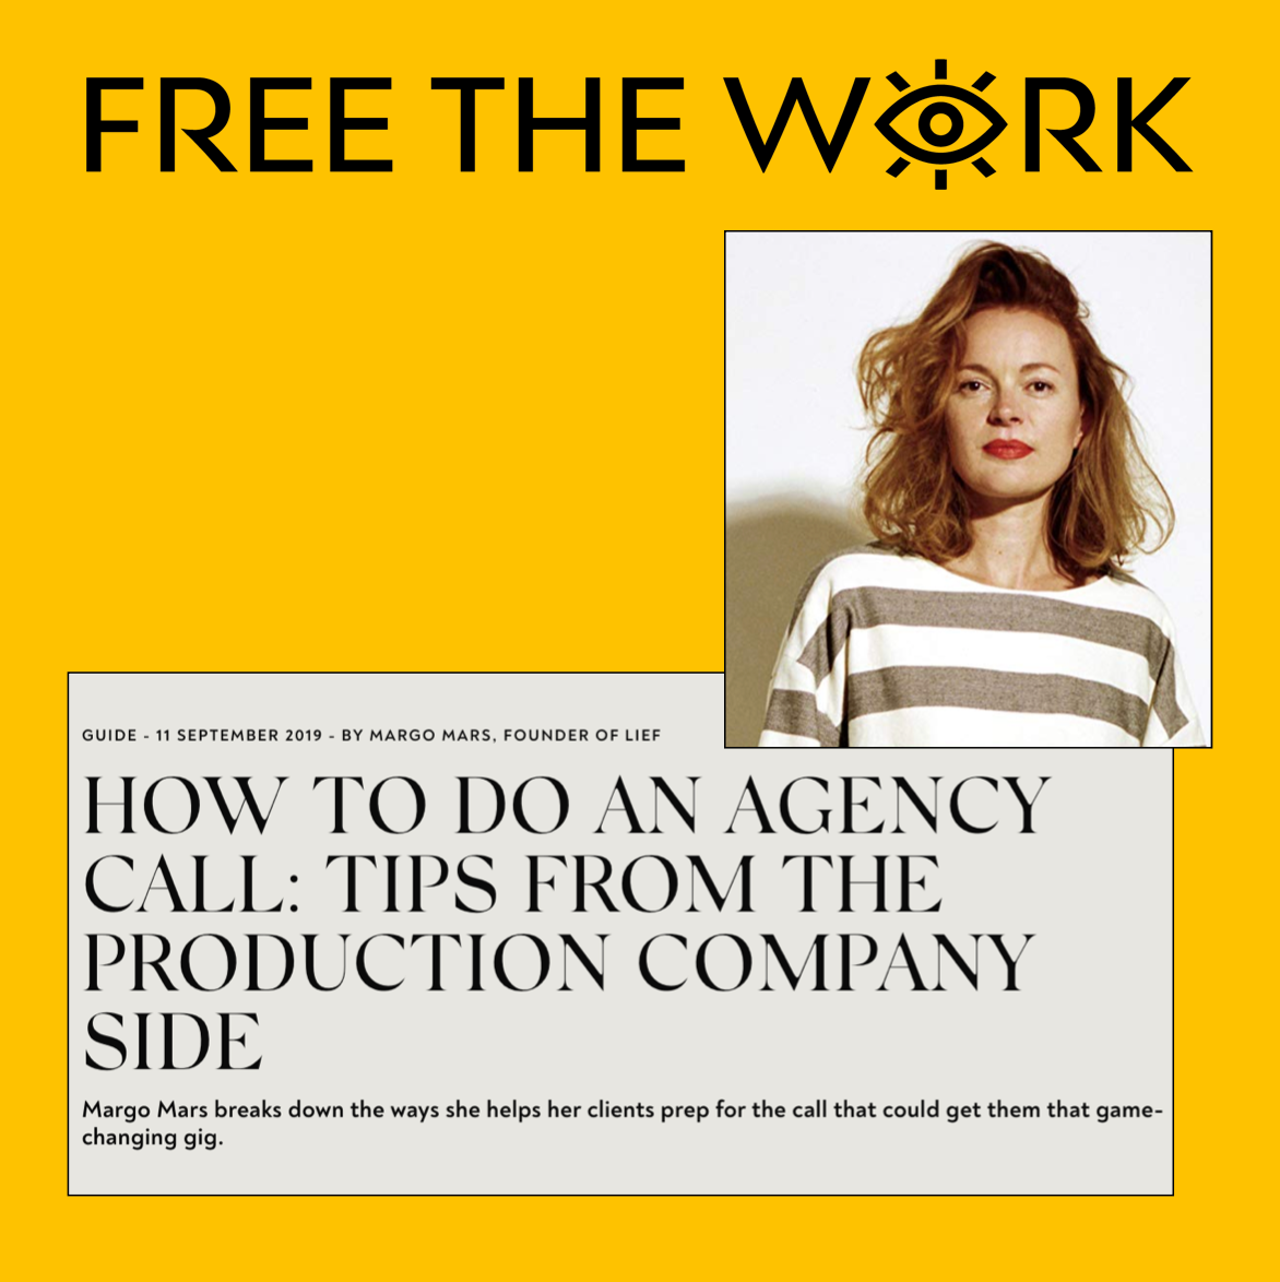 'How to do an agency call' a guide by Margo Mars on FREE THE WORK